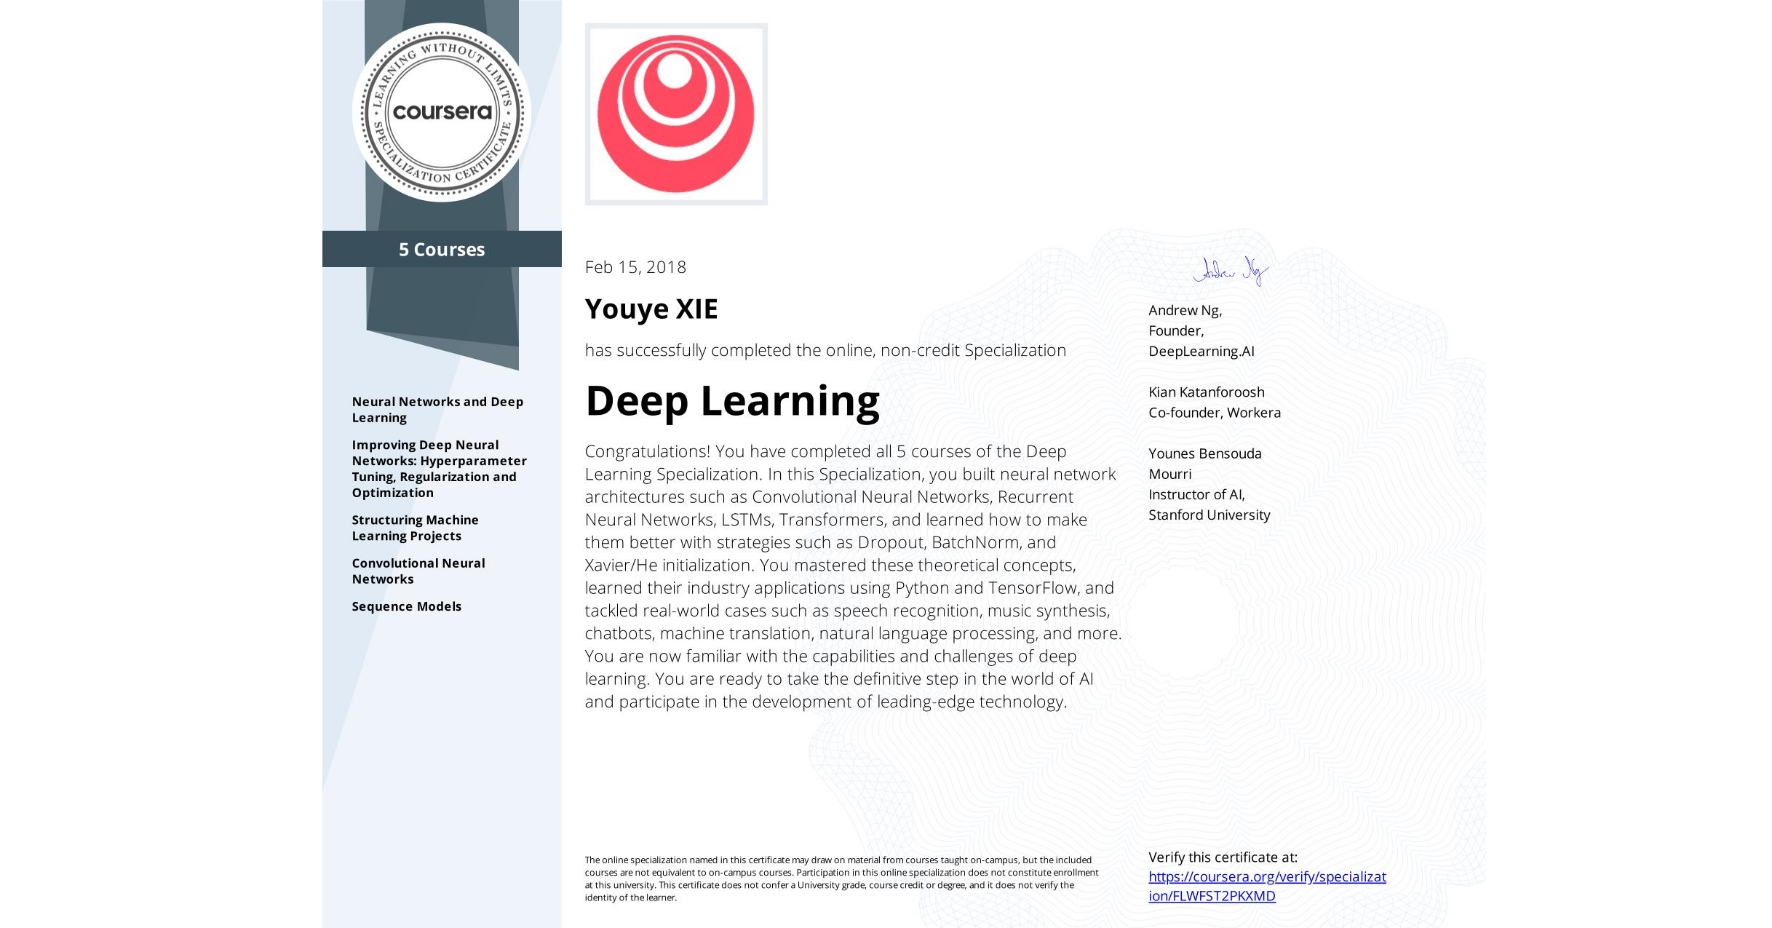 View certificate for Youye XIE, Deep Learning, offered through Coursera. The Deep Learning Specialization is designed to prepare learners to participate in the development of cutting-edge AI technology, and to understand the capability, the challenges, and the consequences of the rise of deep learning. Through five interconnected courses, learners develop a profound knowledge of the hottest AI algorithms, mastering deep learning from its foundations (neural networks) to its industry applications (Computer Vision, Natural Language Processing, Speech Recognition, etc.).